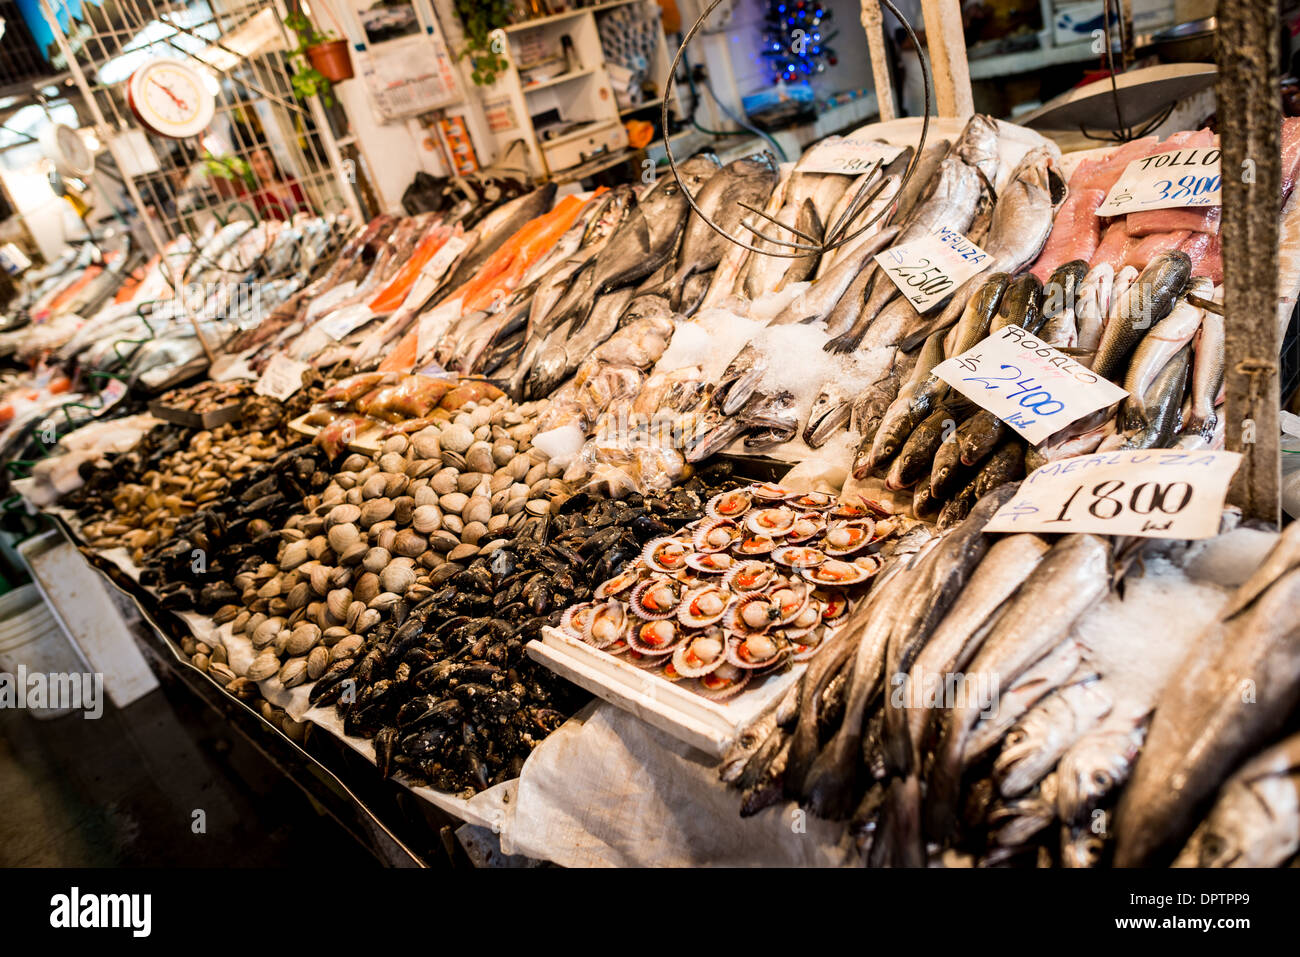 SANTIAGO, Chile - Fresh fish and seafood for sale at Mercado